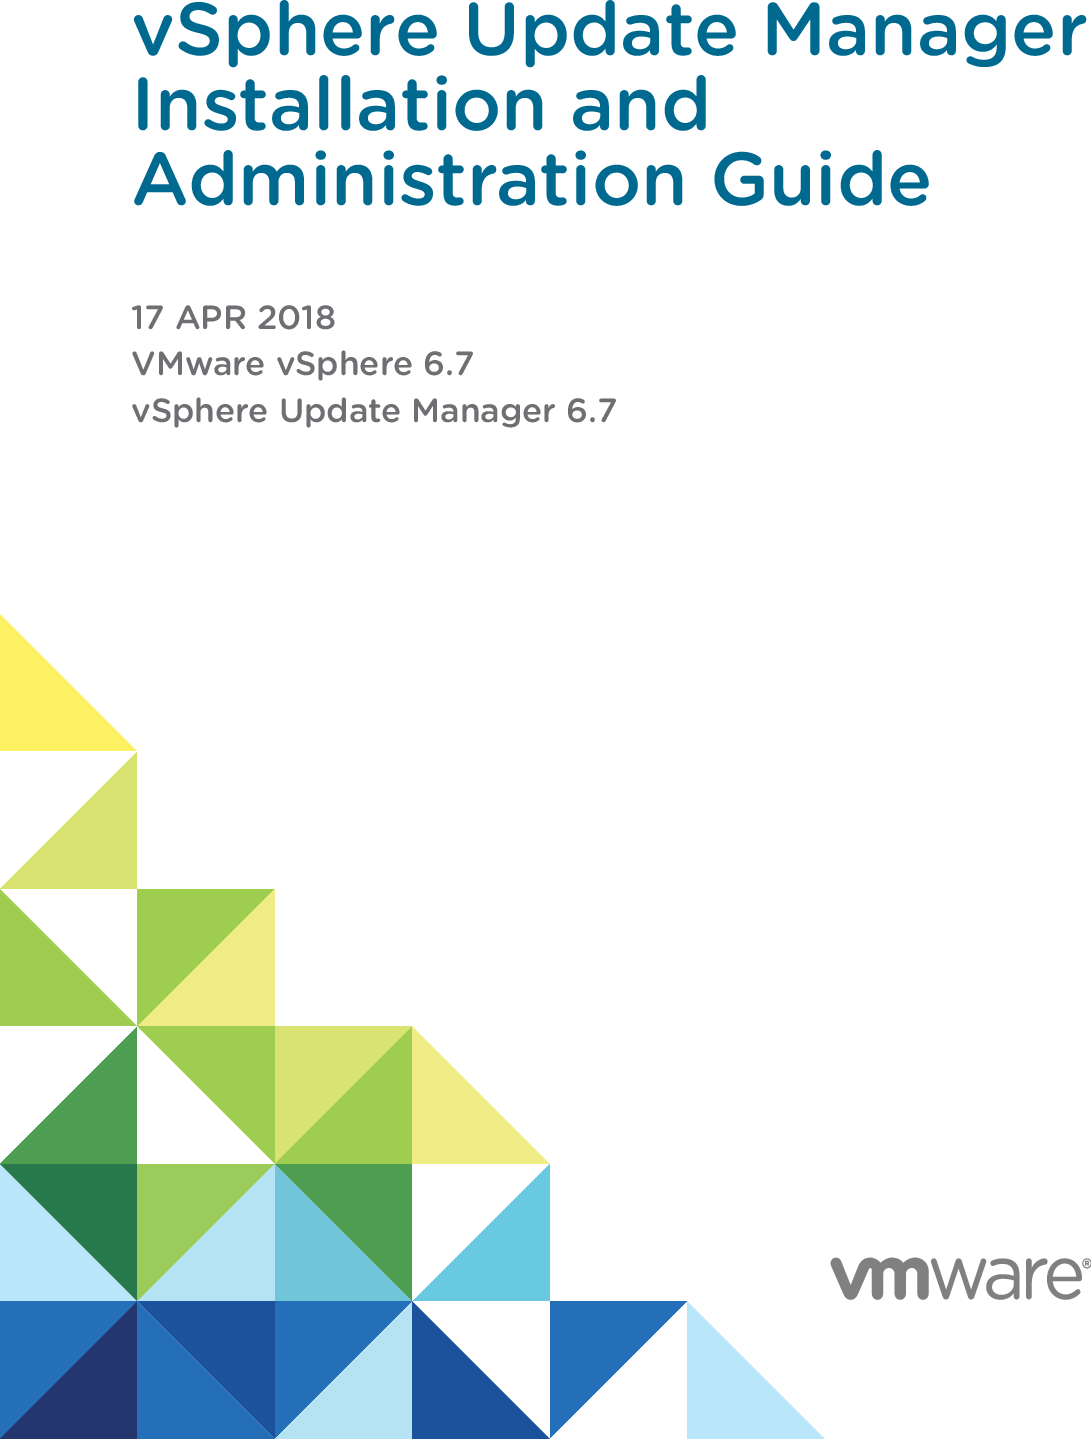 VSphere Update Manager Installation And Administration Guide